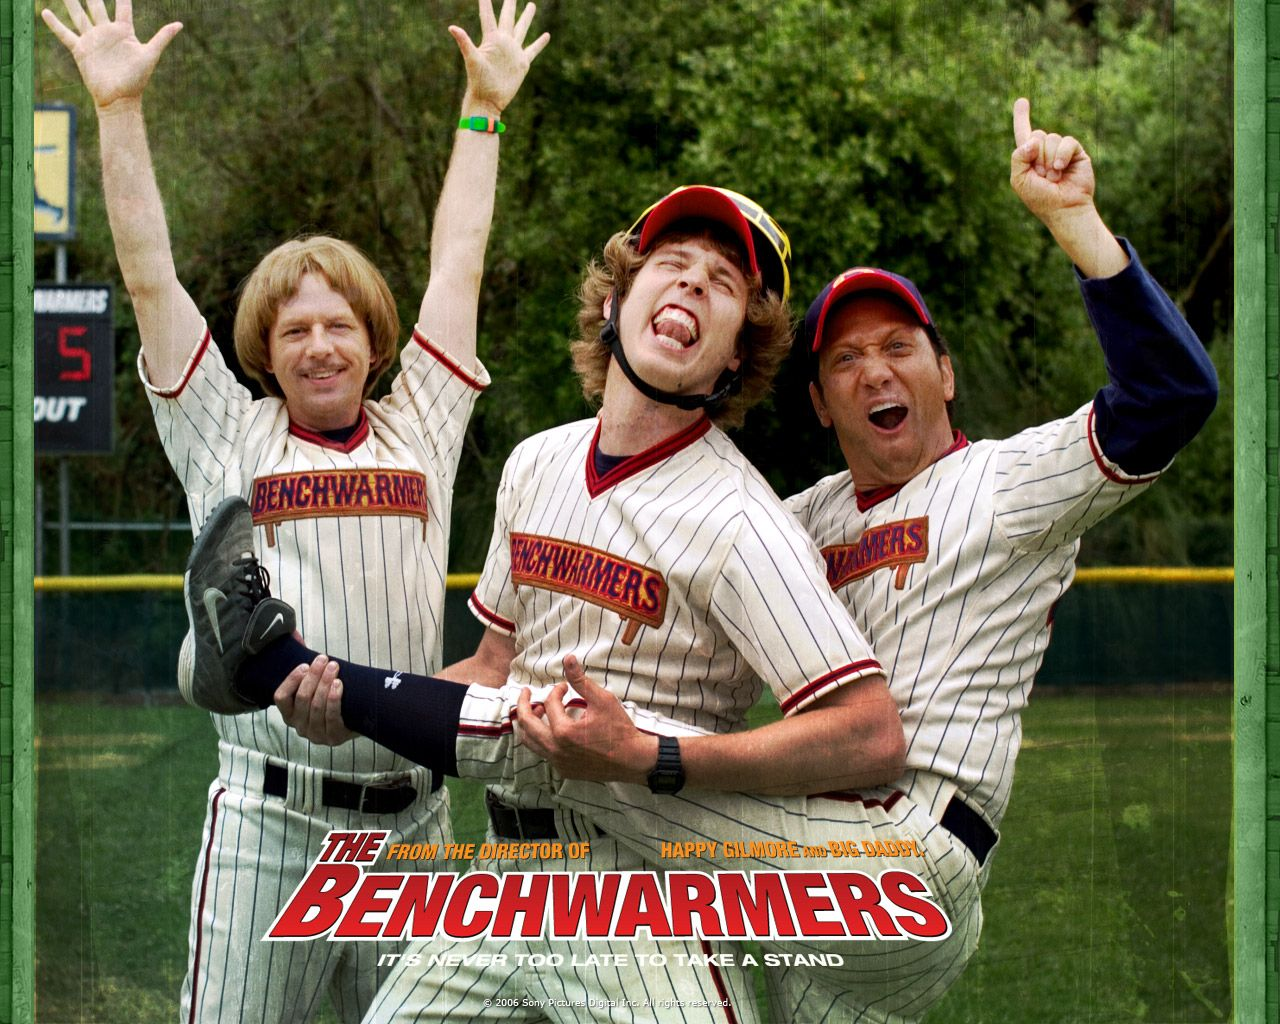 The Benchwarmers Thewallpapers Free Desktop Wallpapers For Hd Widescreen And Mobile The Benchwarmers Jon Heder Movies